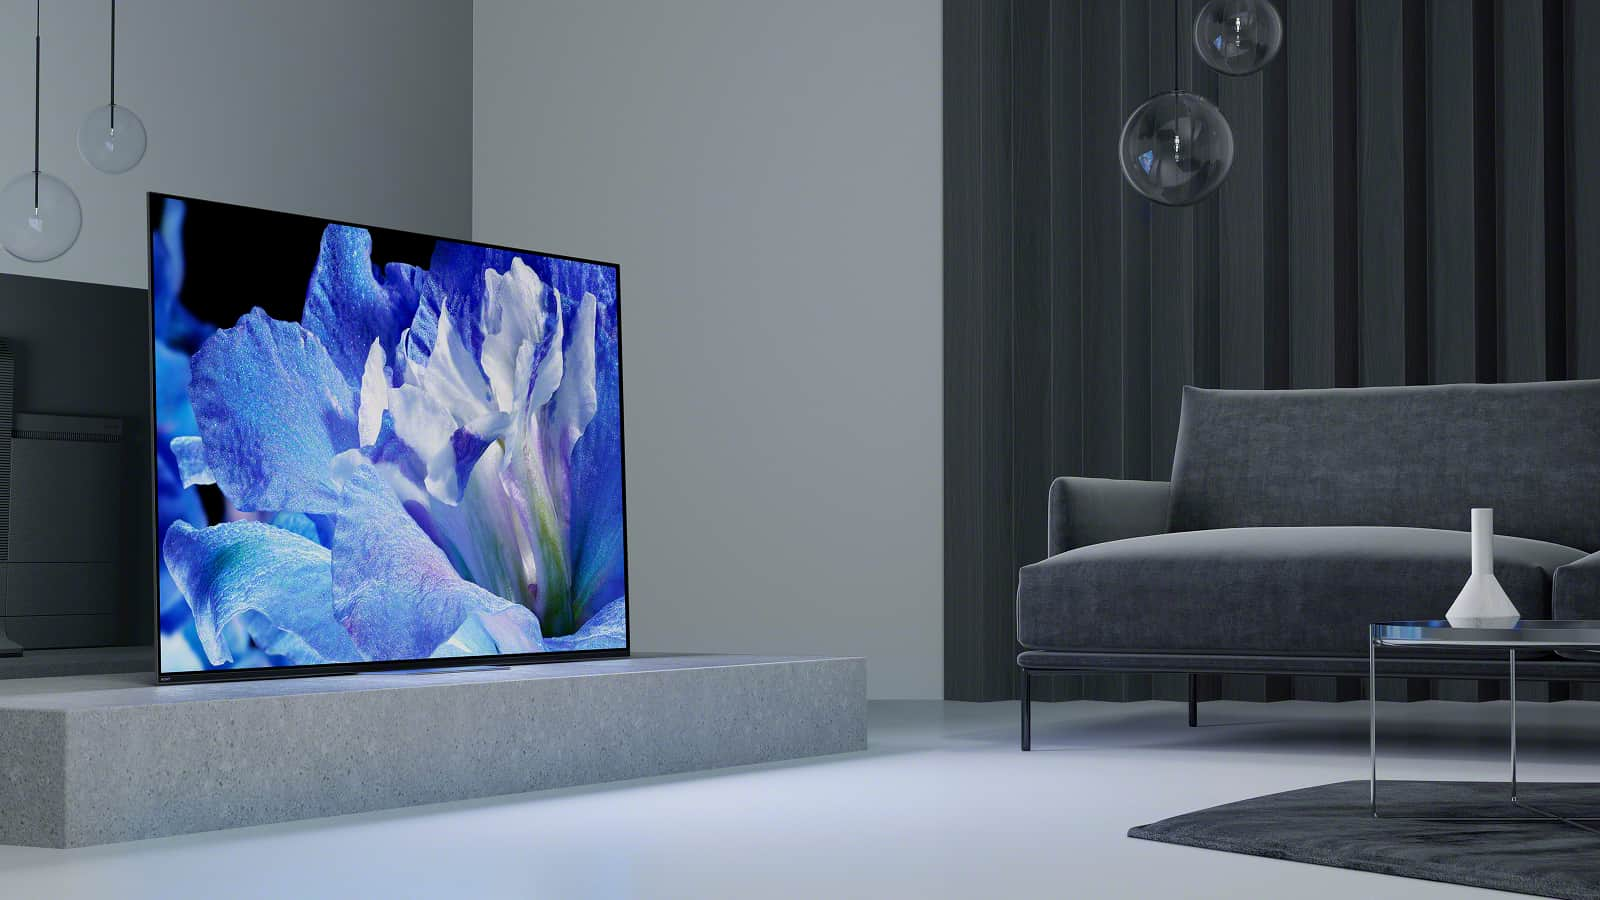 sony-af8-series-of-4k-hdr-oled-televisions